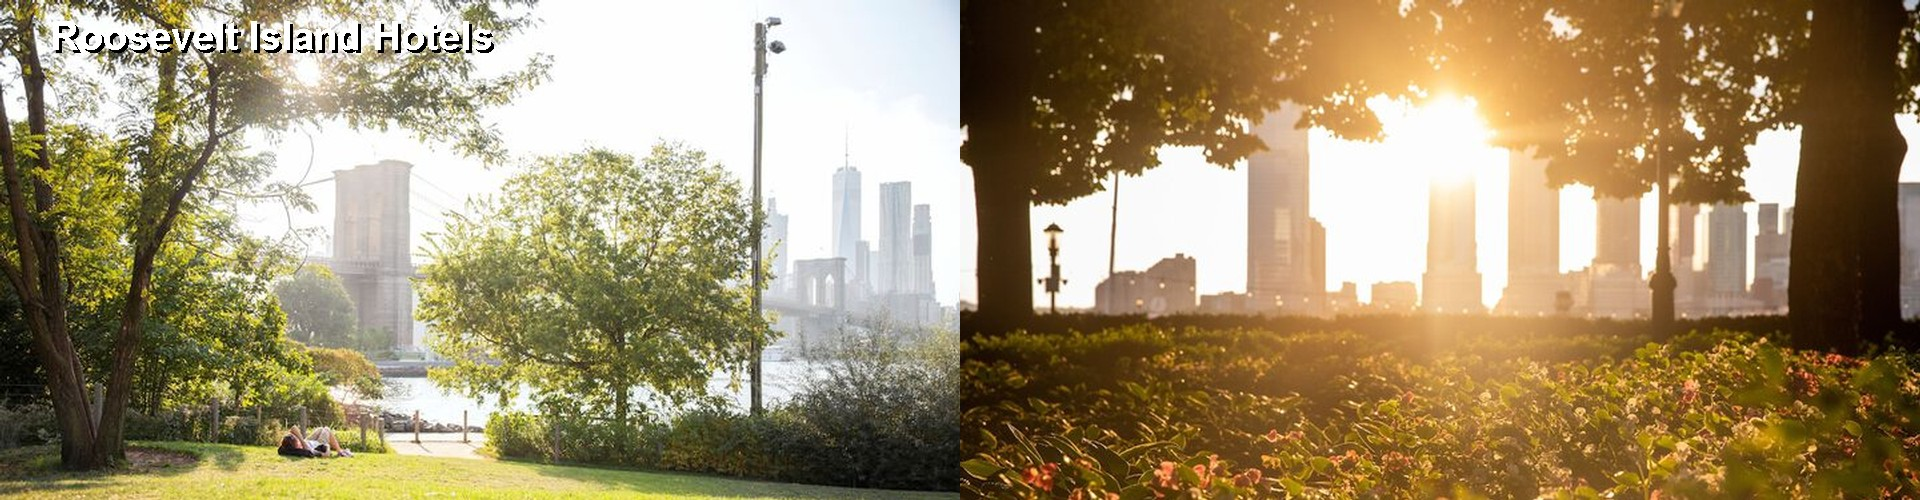 5 Best Hotels near Roosevelt Island